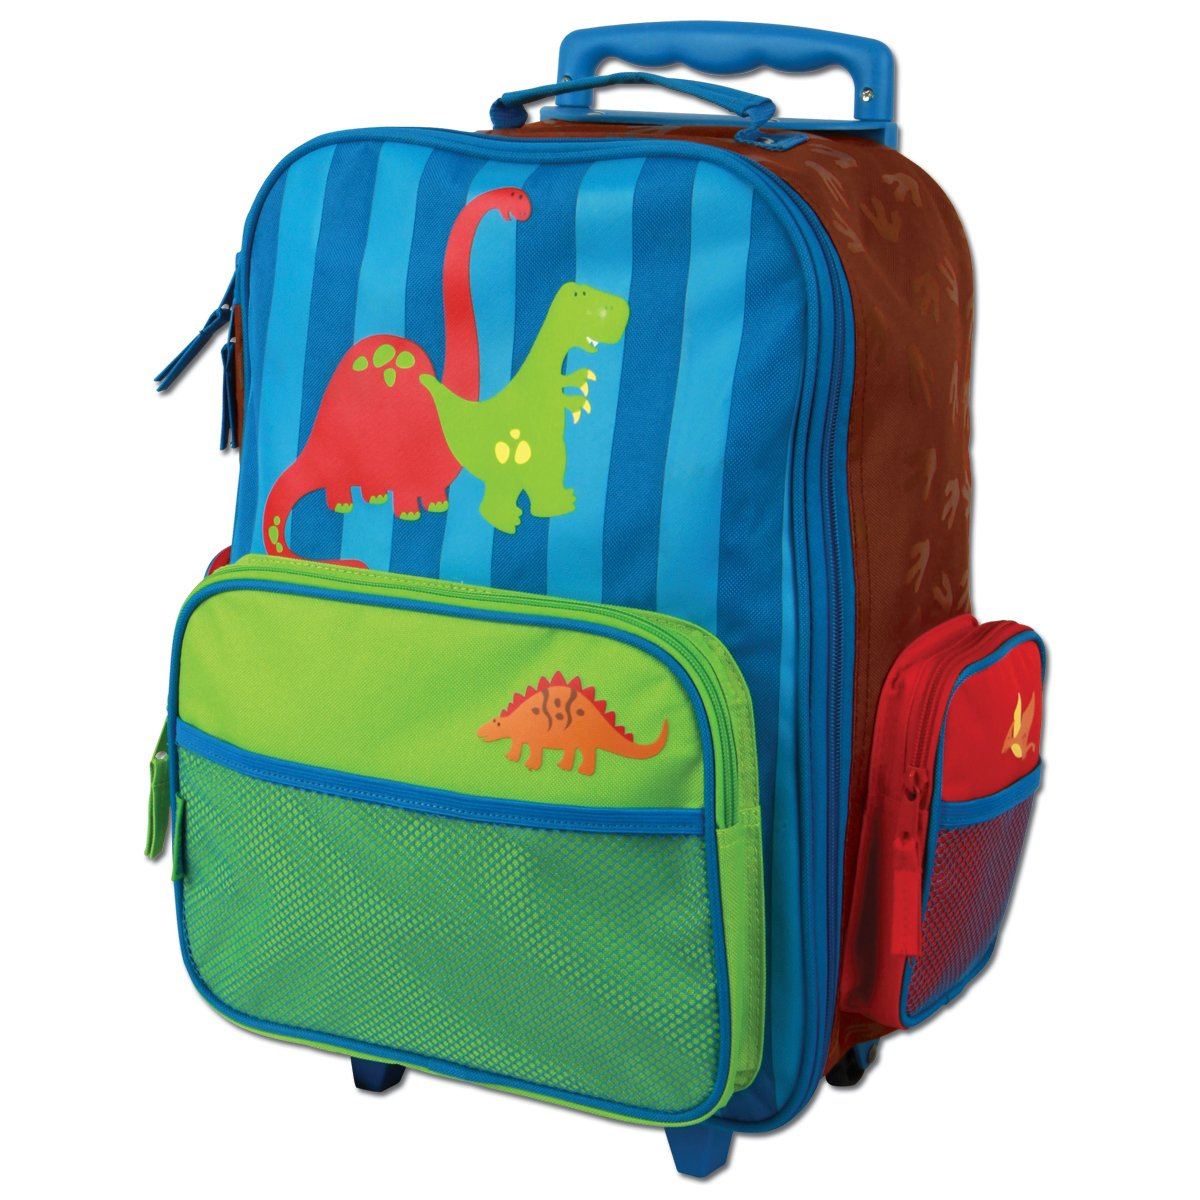 Stephen Joseph Dino Rolling Luggage, Multi, One Size, 1-Pack SJ800159